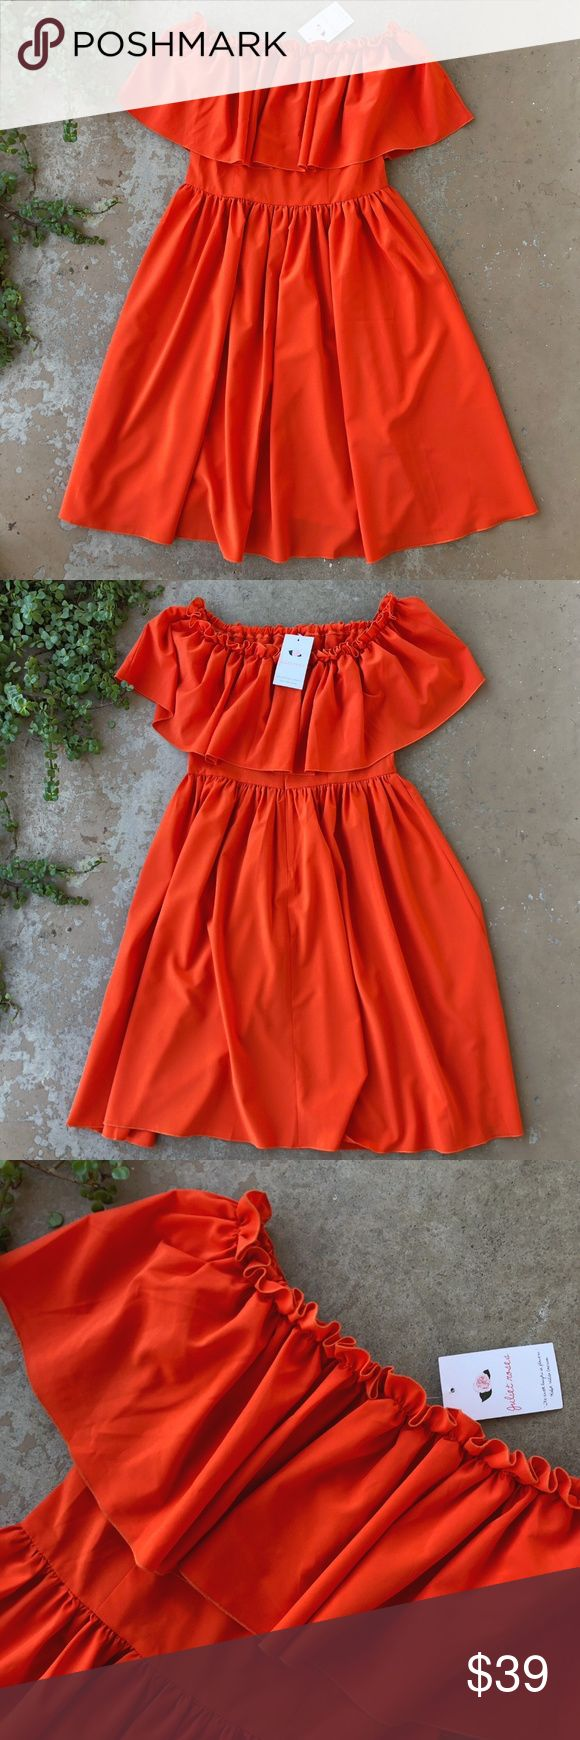 NWT Juliet Roses Off Shoulder Boho Tea Dress Bright red/orange tea dress with an off shoulder ruffle design by Juliet Roses from Nordstrom. Zips up the back. Size small. New with tags! Juliet Roses Dresses